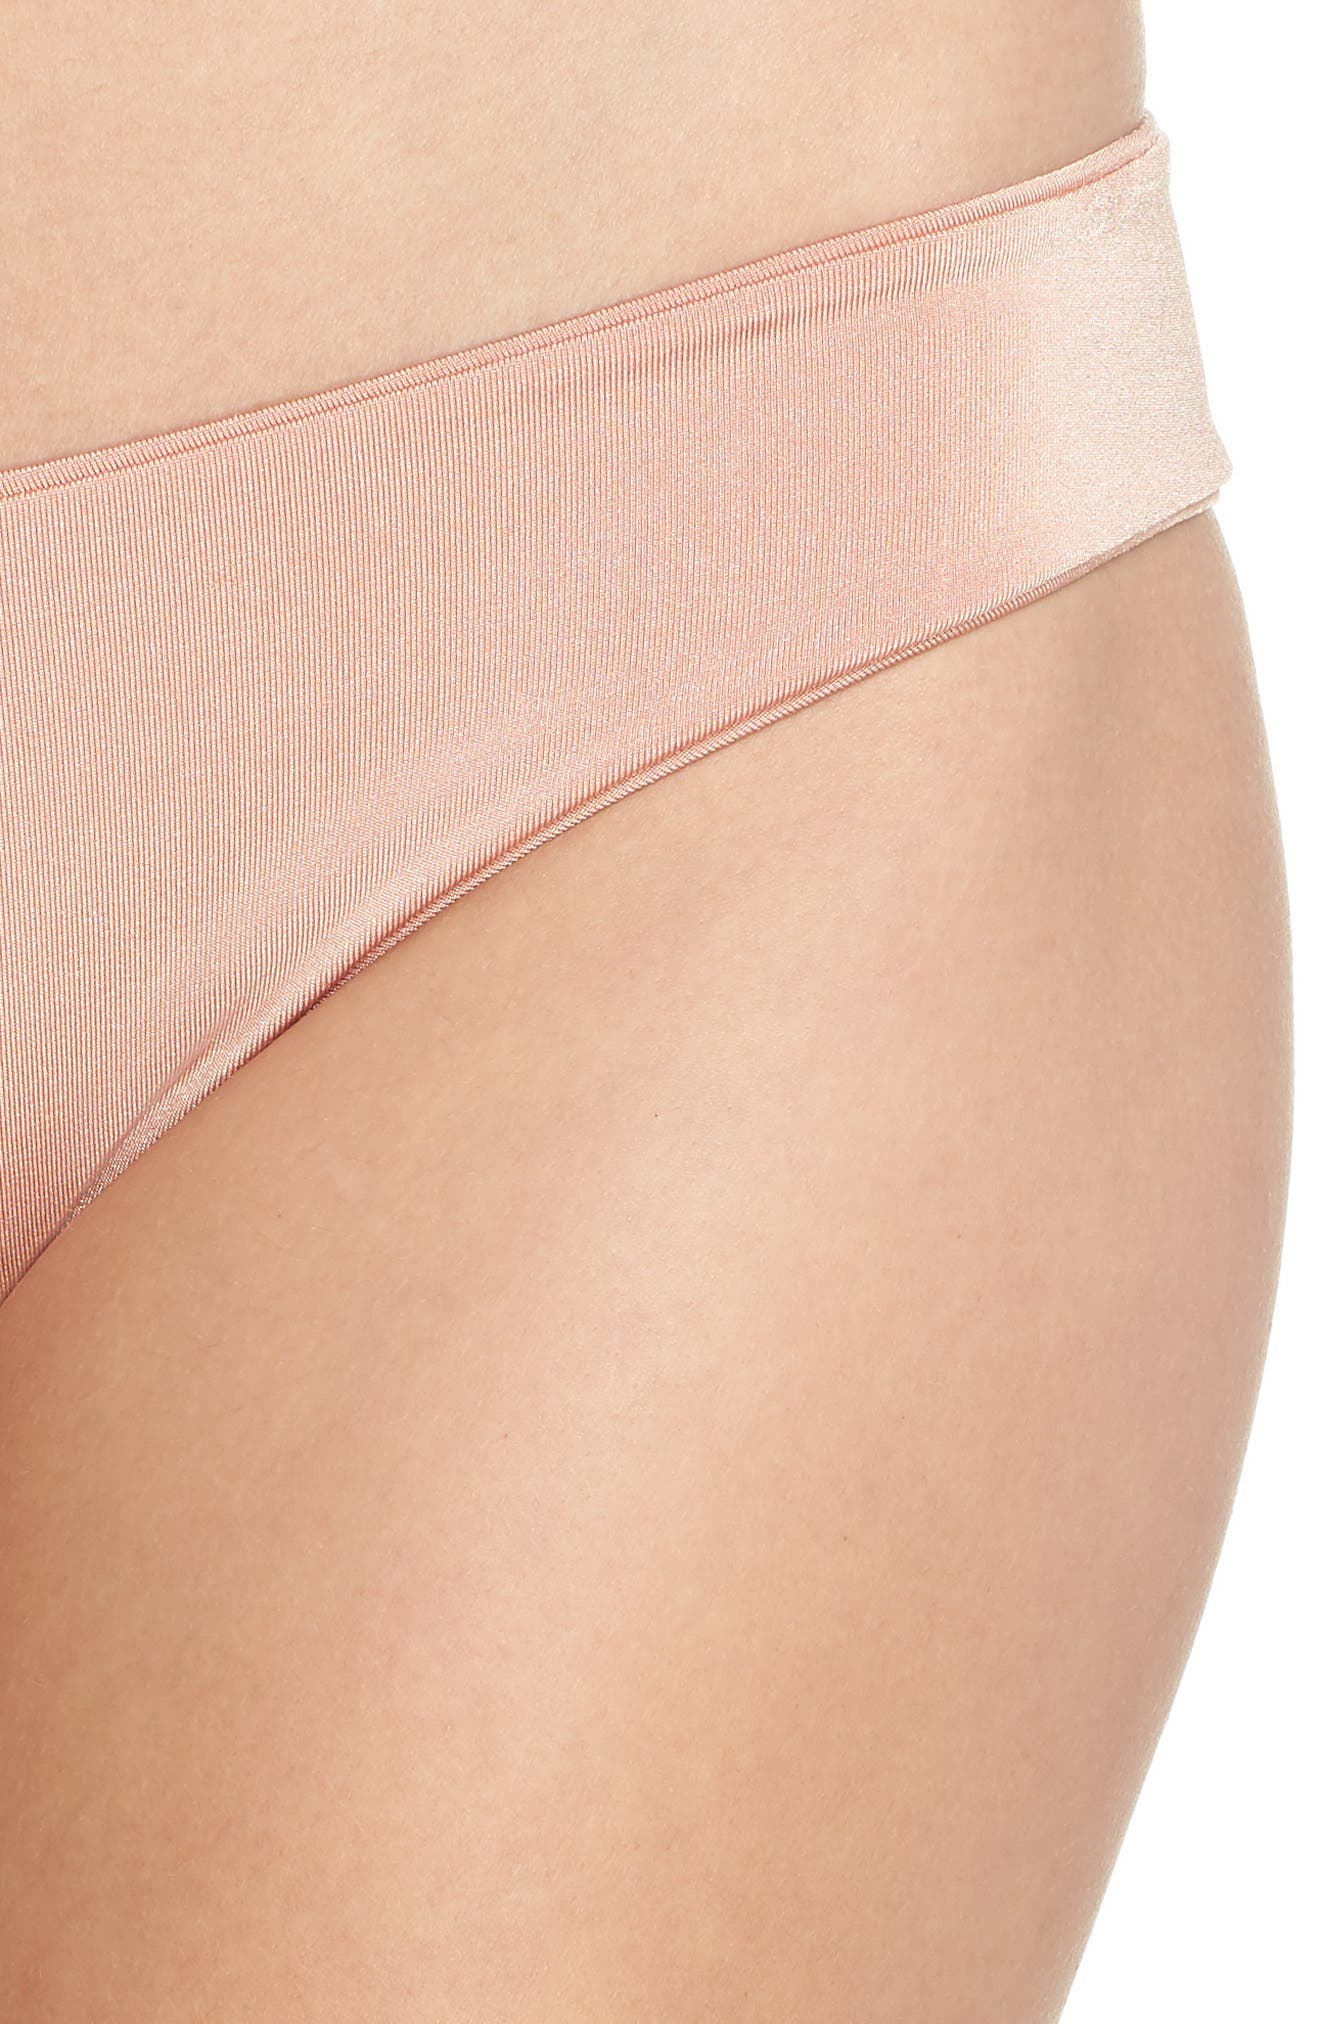 Charlie Bikini Bottoms,                             Alternate thumbnail 4, color,                             BLUSH & BASHFUL